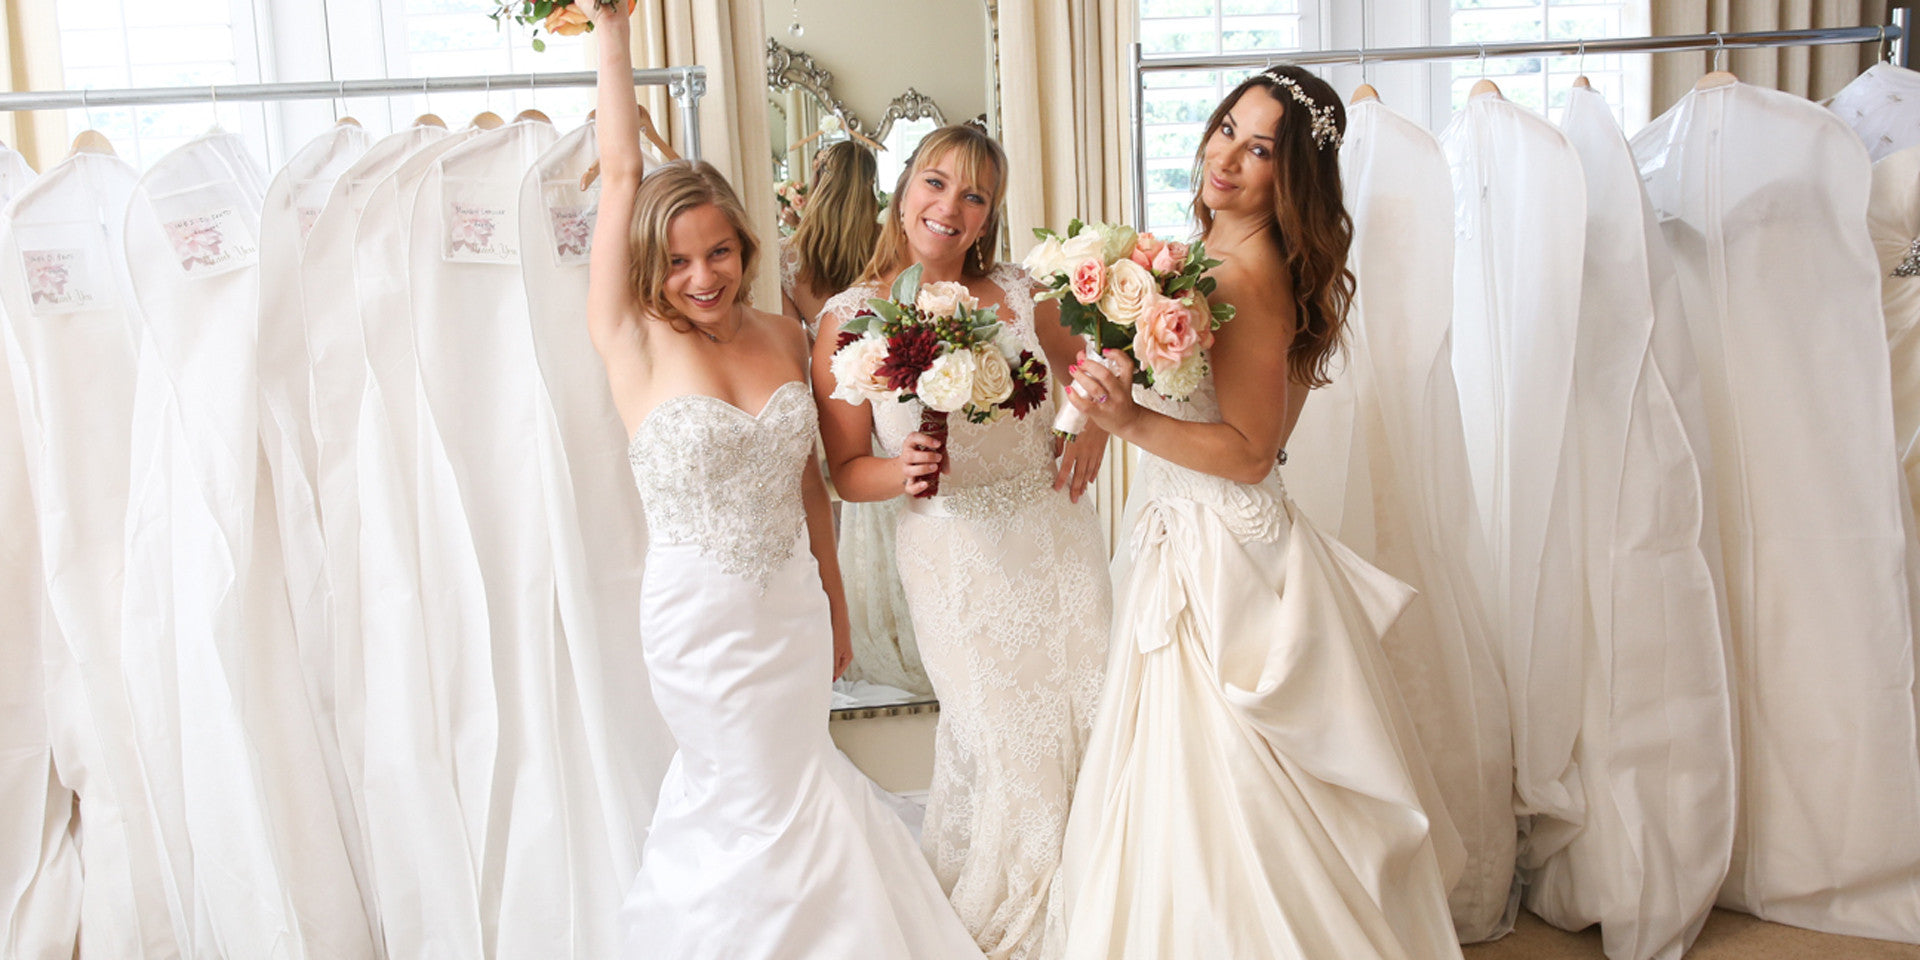 Where to sell used wedding dress latest used wedding gowns for gallery of buy u sell used designer wedding dresses u gowns u online consign couture llc with where to sell used wedding dress ombrellifo Gallery